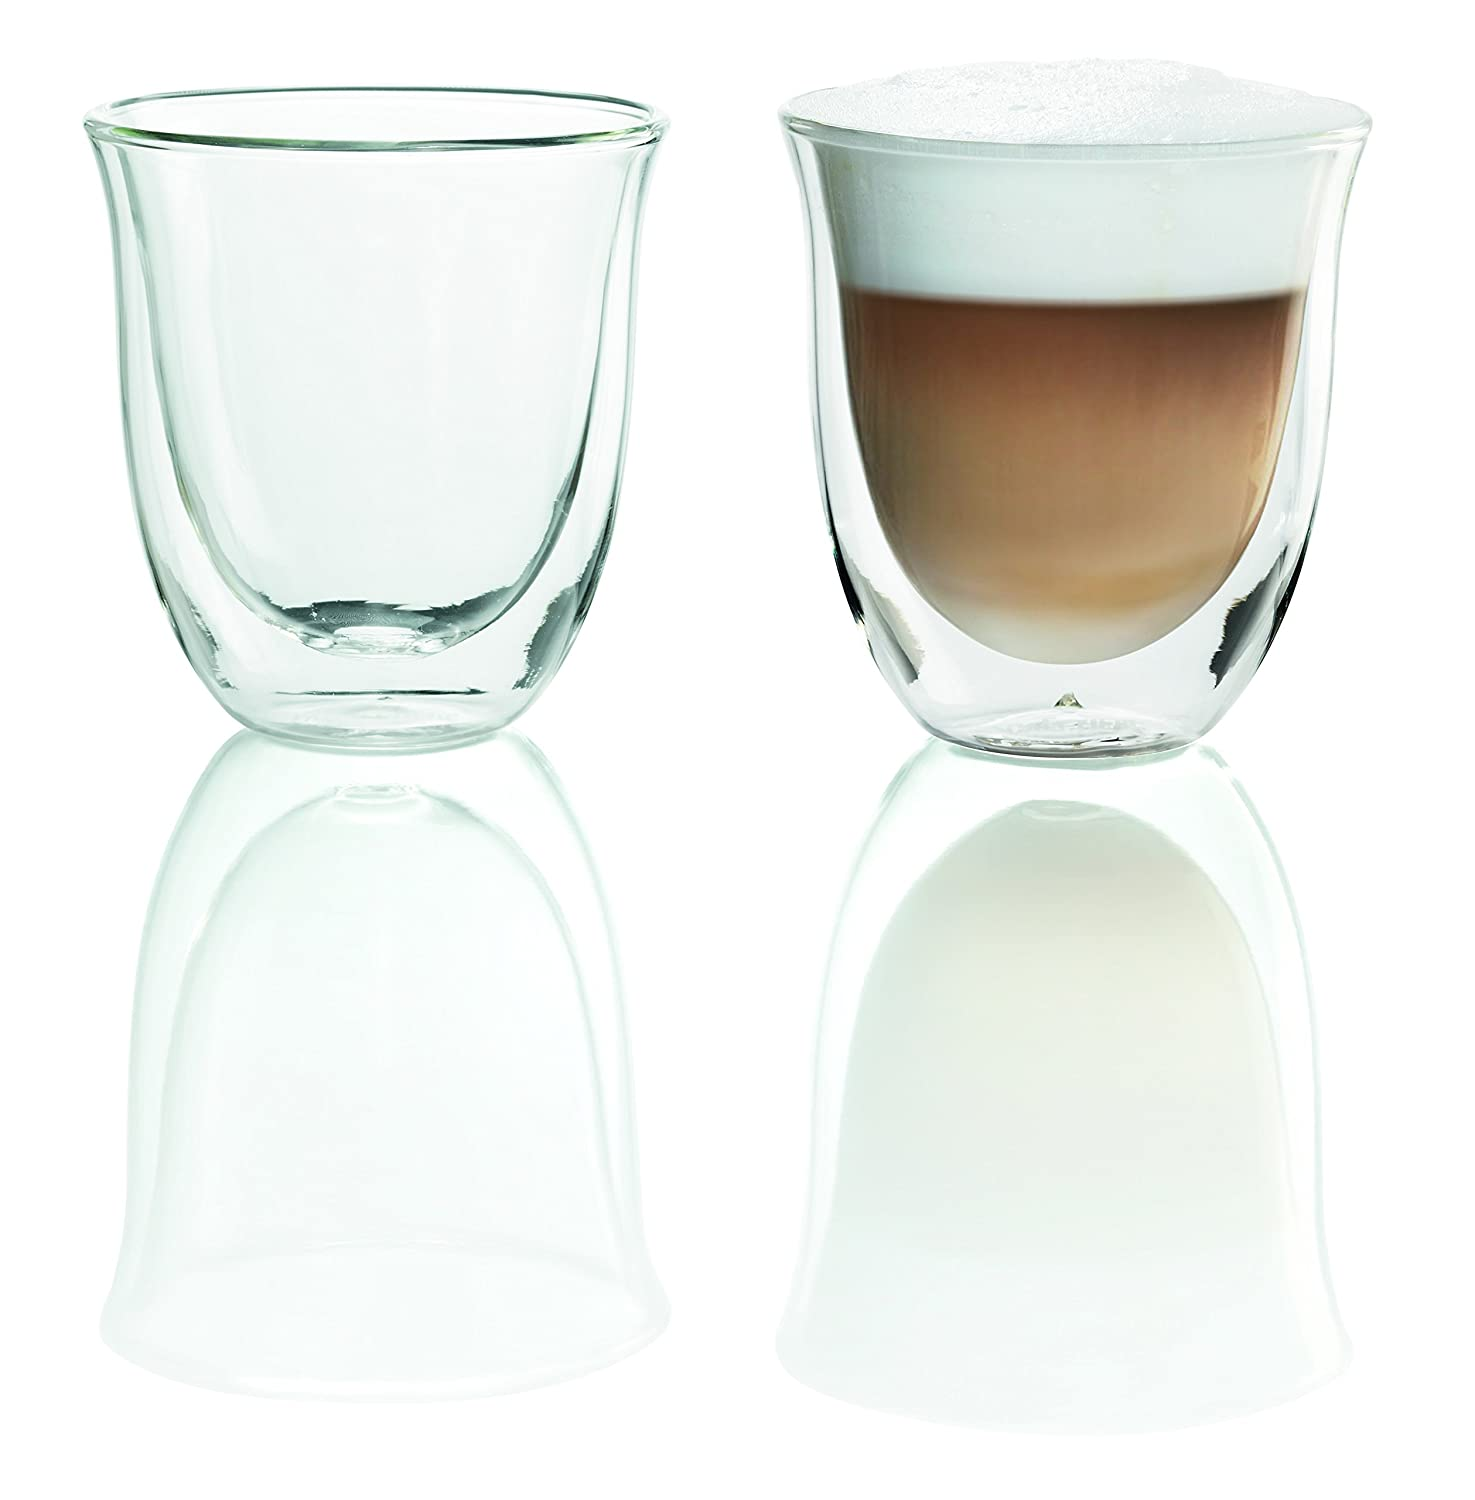 DeLonghi Double Walled Thermo Cappuccino Glasses, 6 fl oz, Set of 2 5513214601 5513214601_N/A